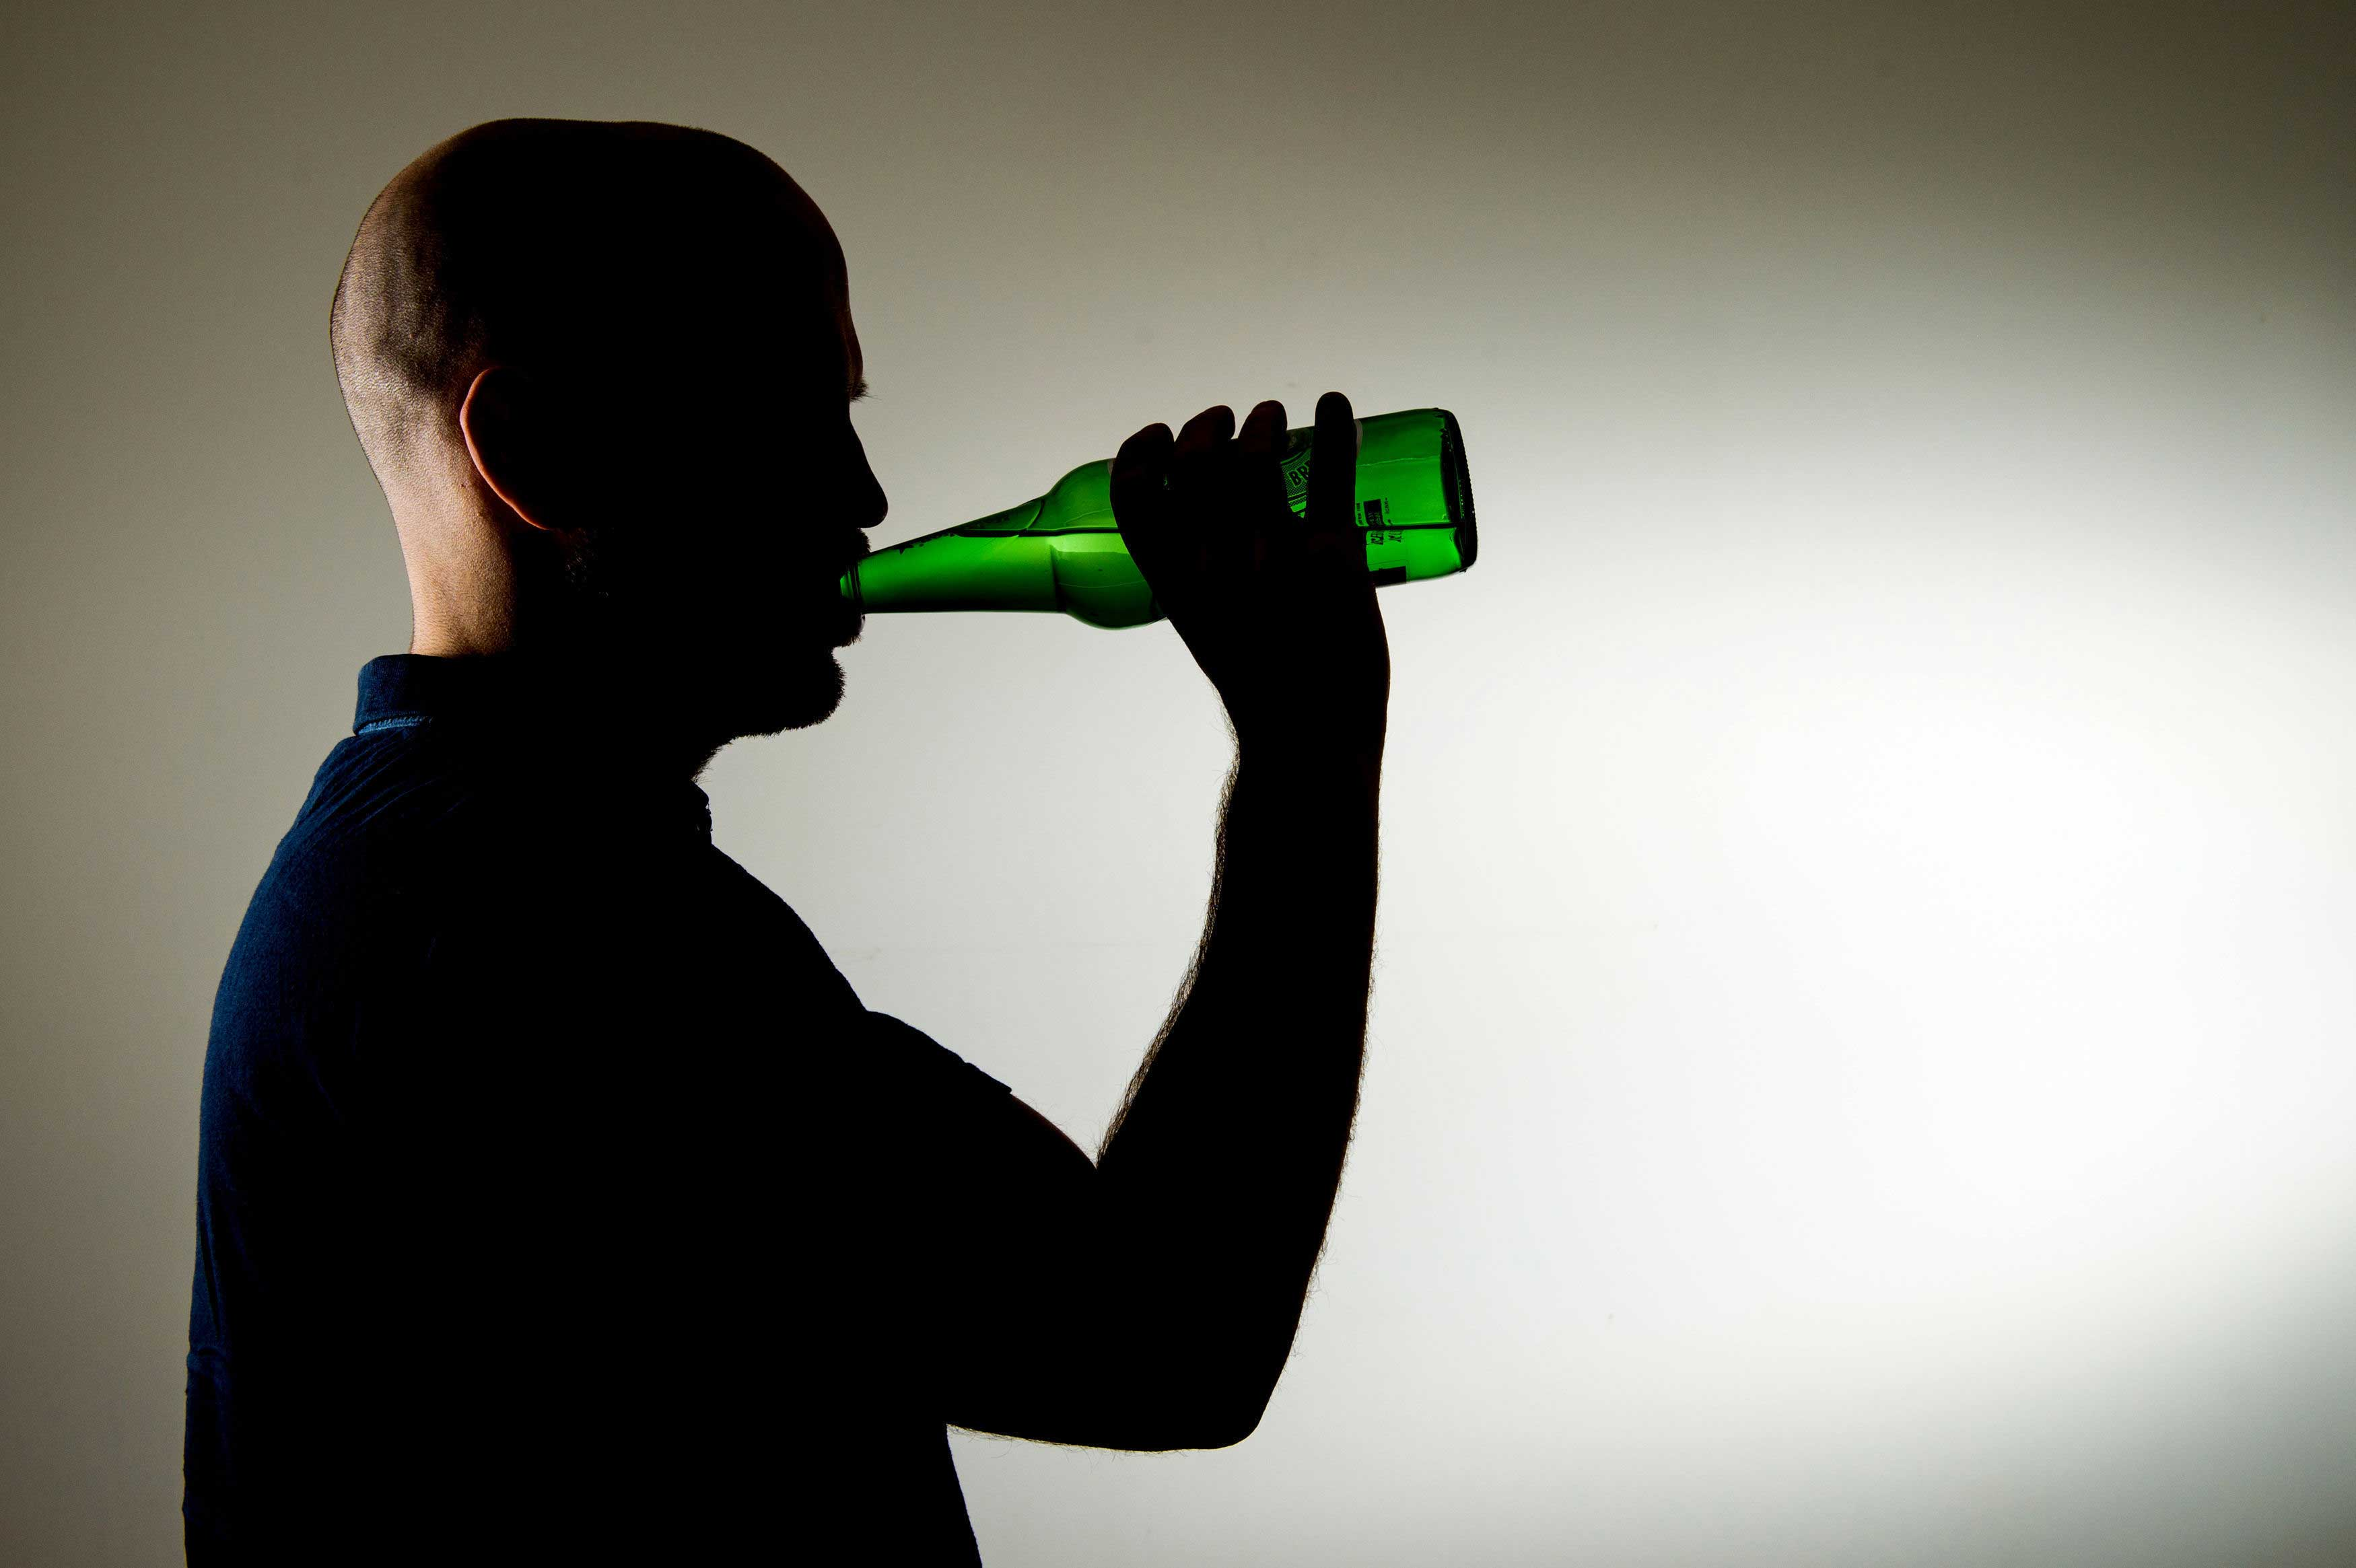 Regularly Having One Too Many Drinks Could Shorten Your Life